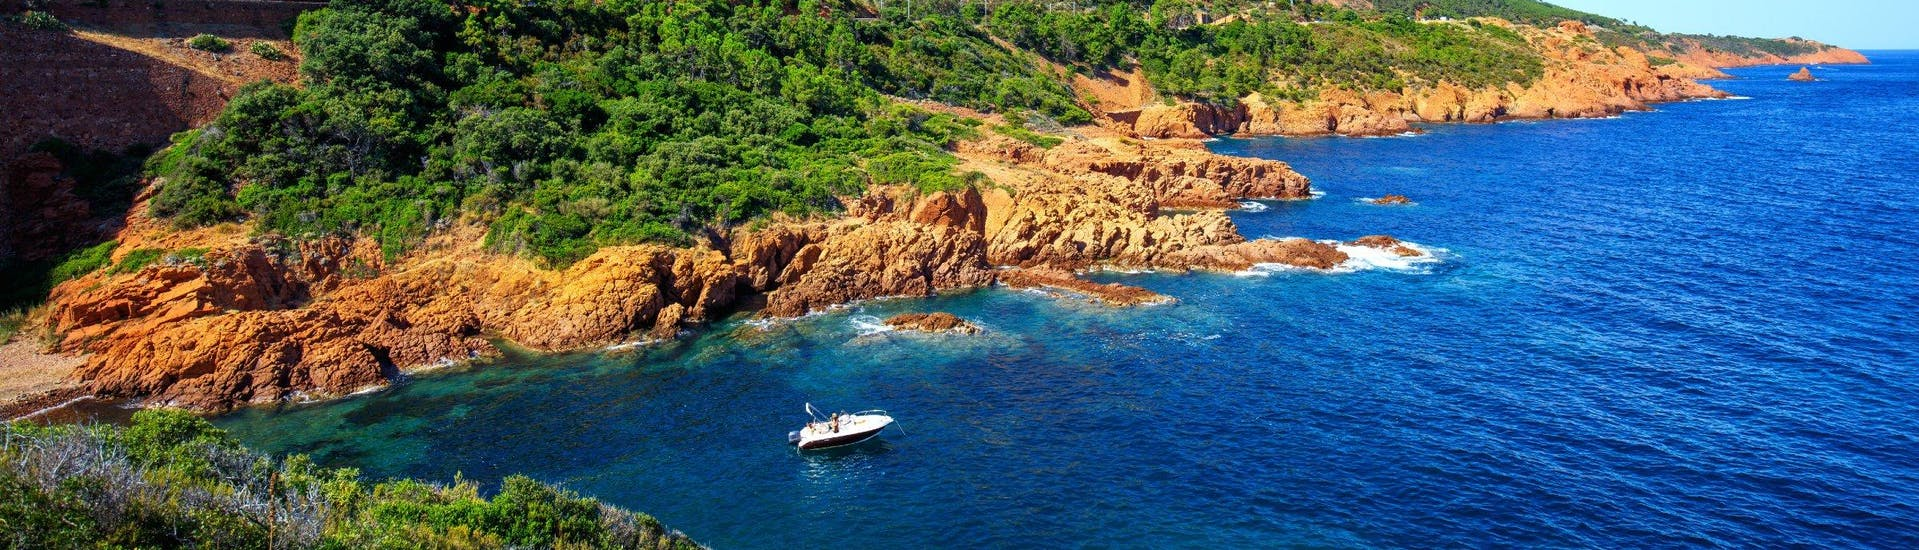 A boat is cruising along the coastline of the L'Estérel Natural Park, which is a popular destination for boat trips from Cannes.